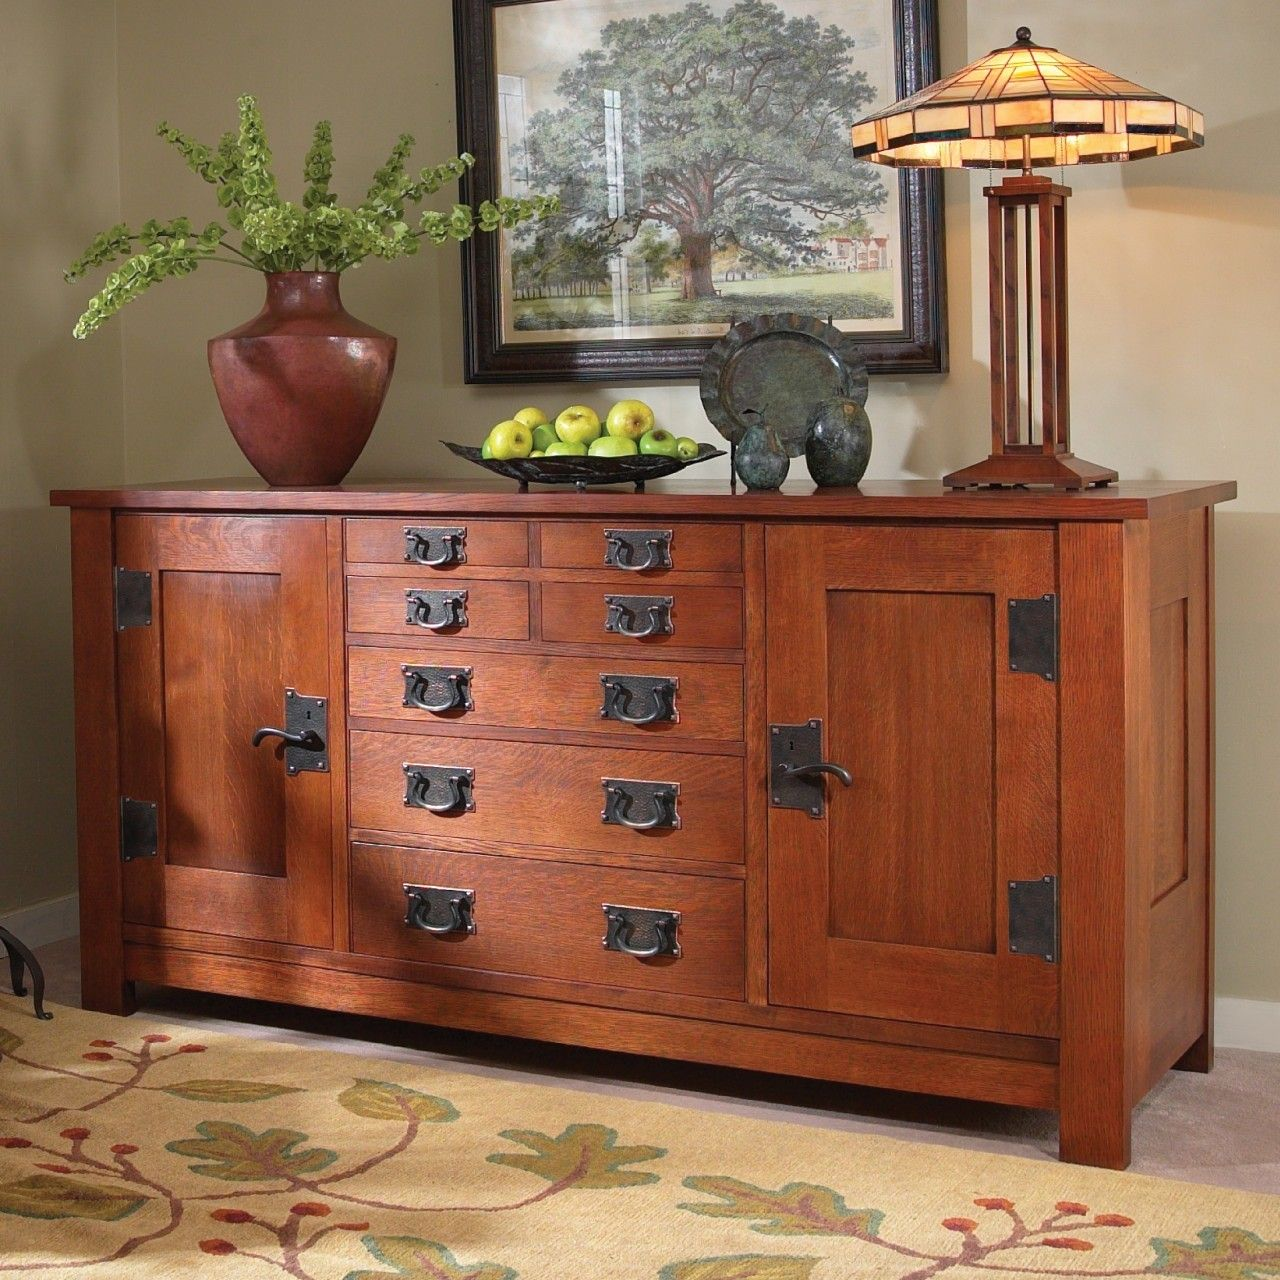 Mission syracuse sideboard chicago furniture tomsprice